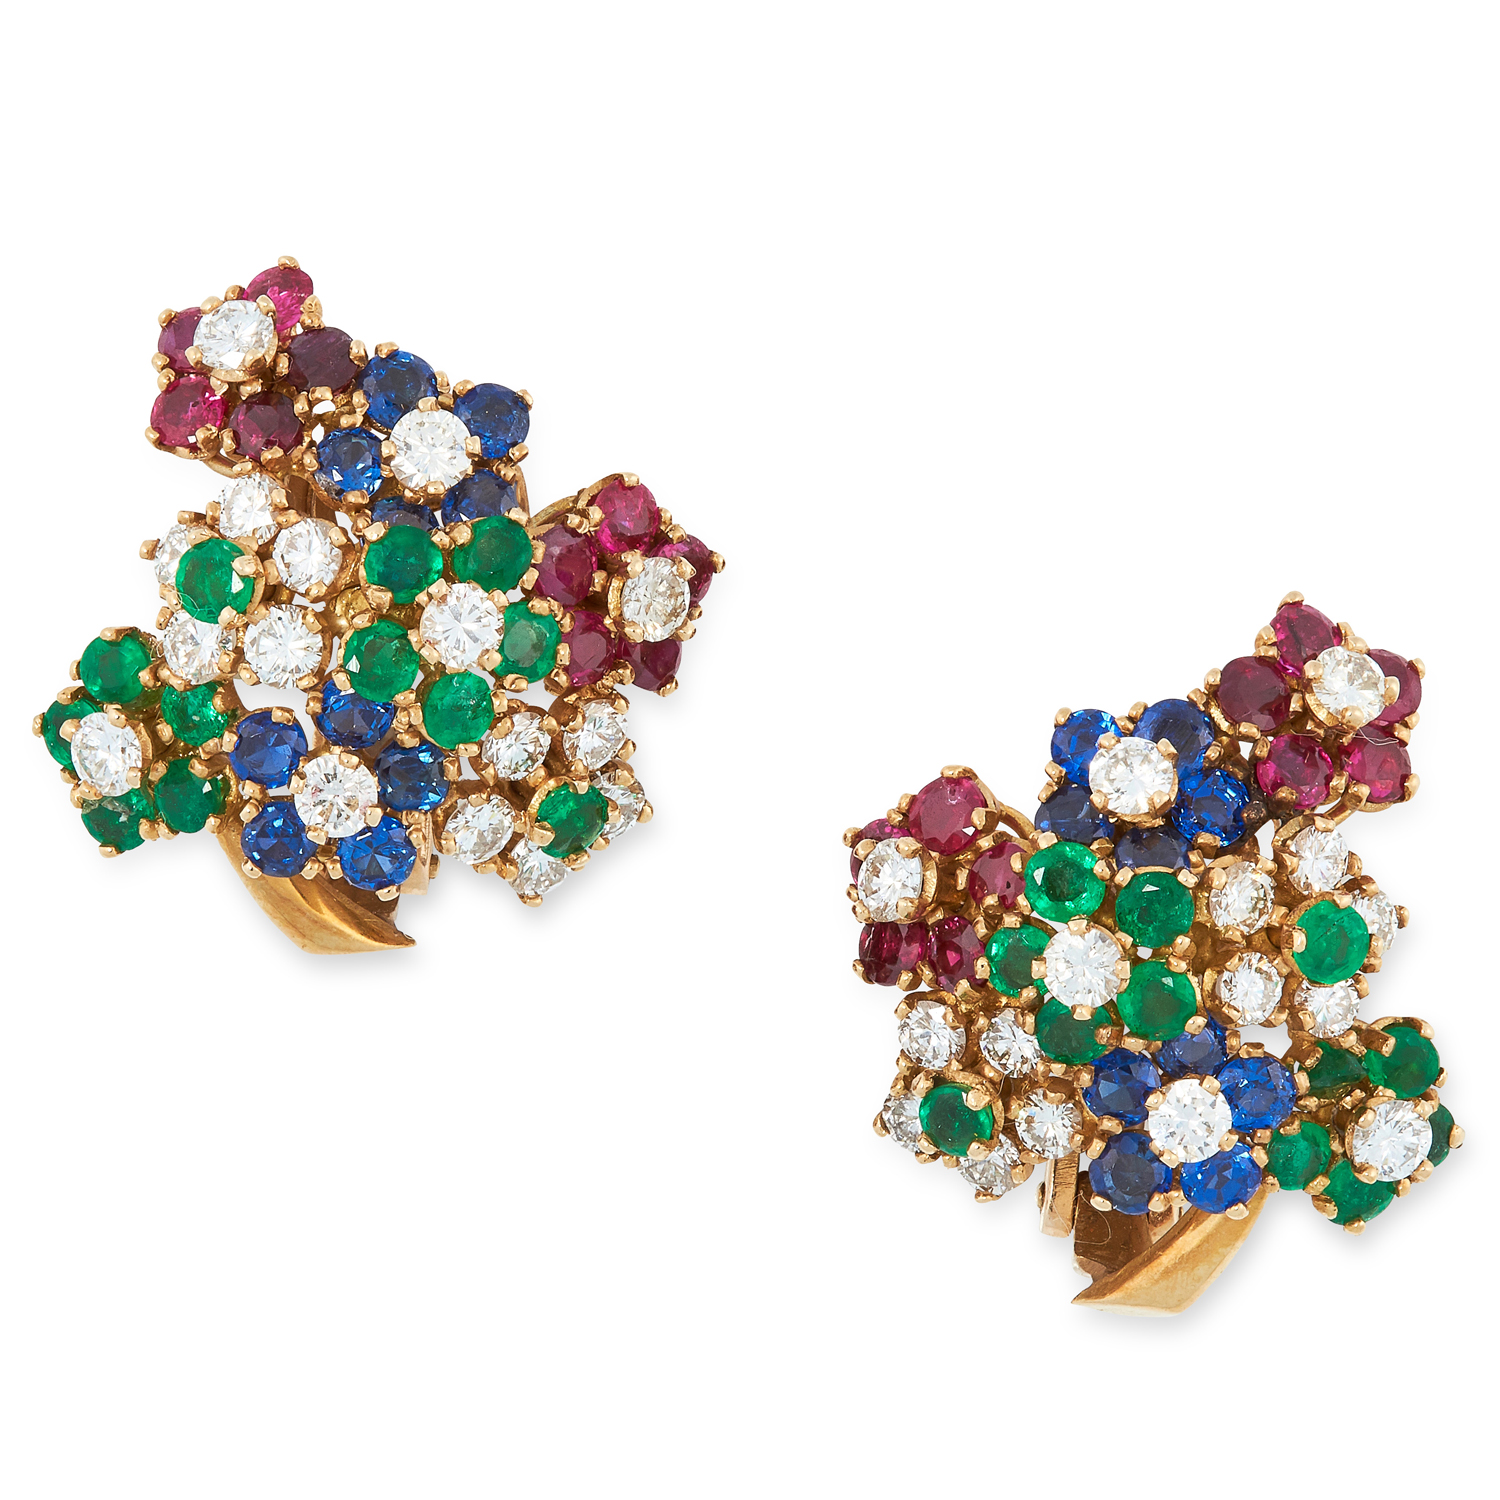 A PAIR OF VINTAGE RUBY, SAPPHIRE, EMERALD AND DIAMOND CLIP EARRINGS, 1960s in high carat yellow